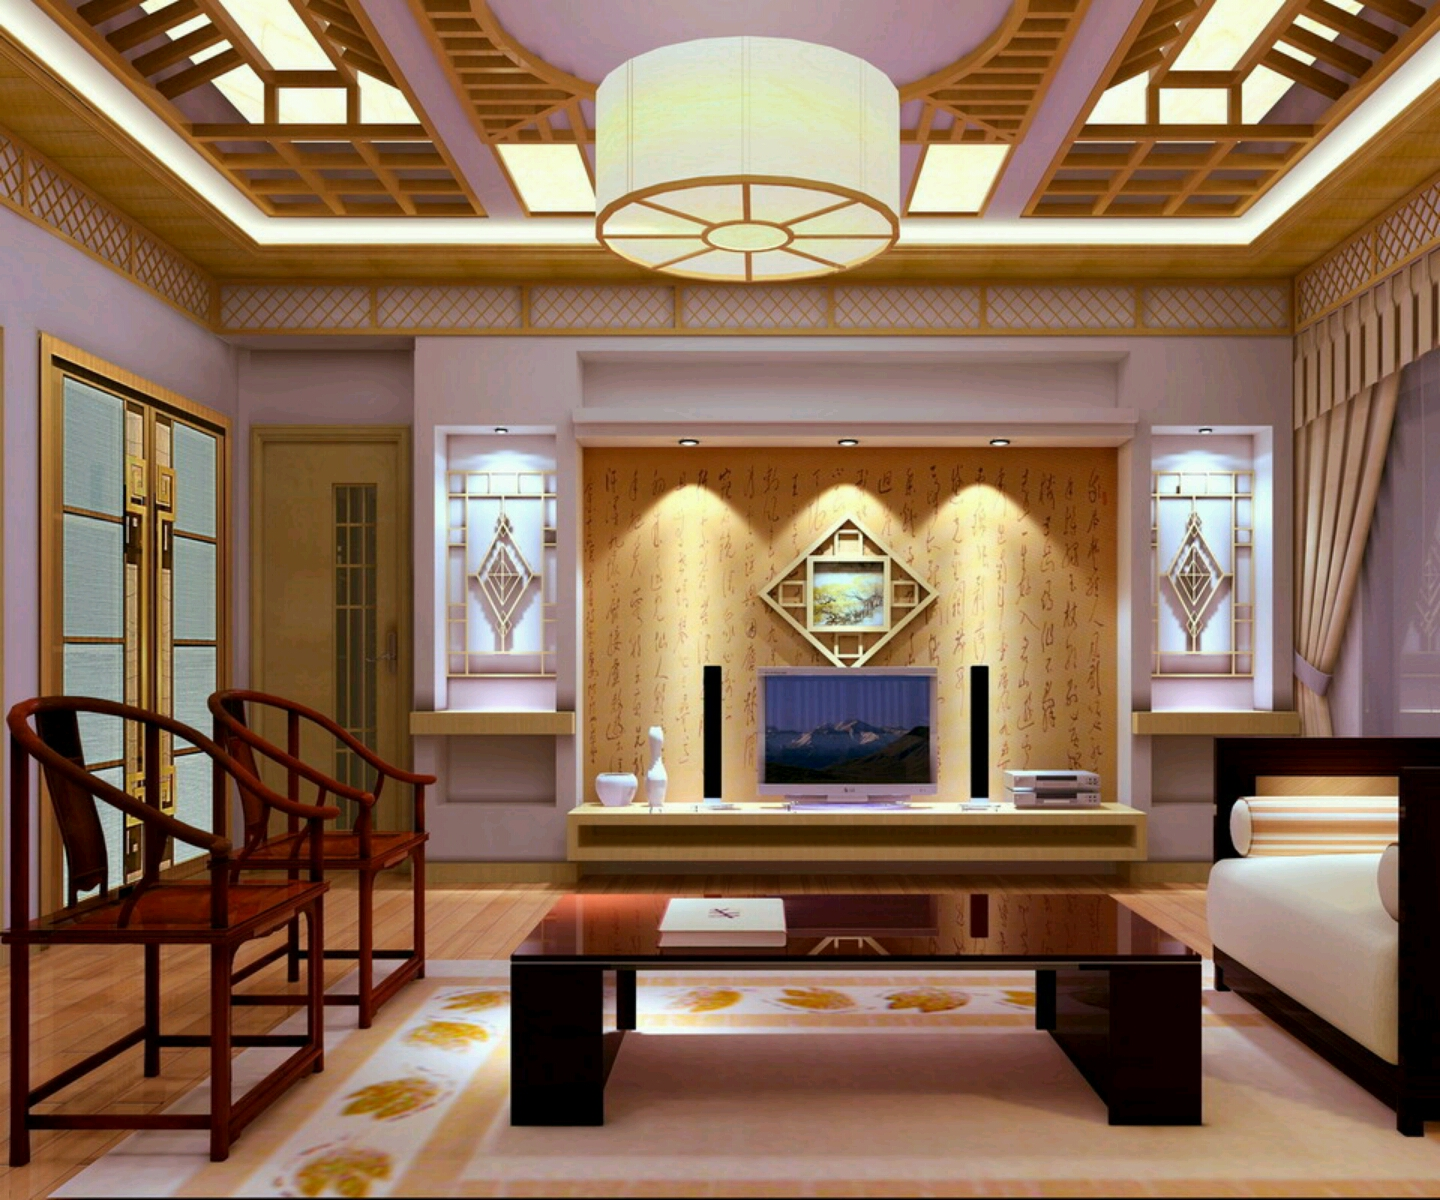 New home designs latest homes interior designs studyrooms New home interior design